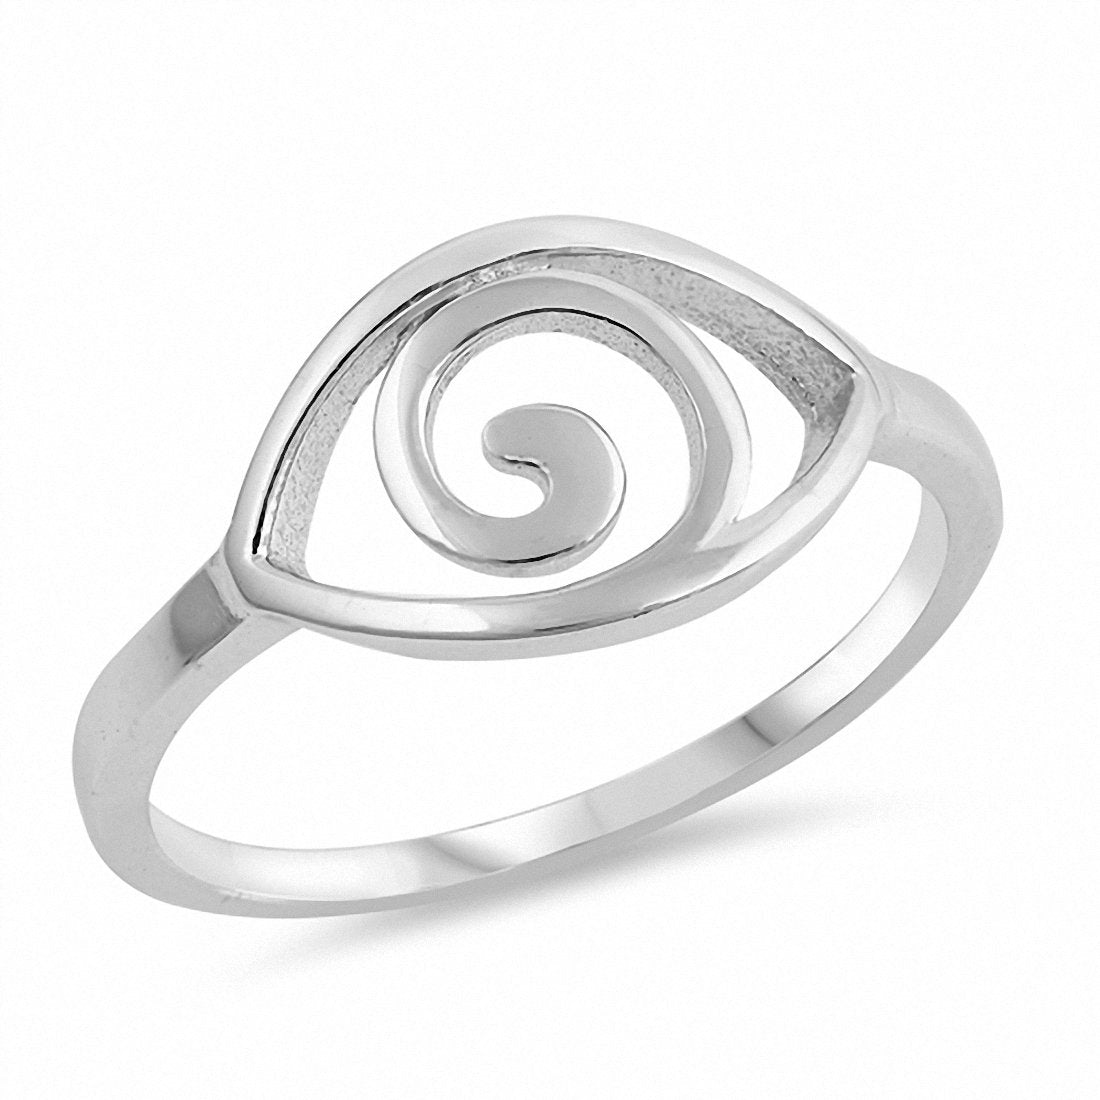 Spiral Eye Ring Band 925 Sterling Silver Choose Color